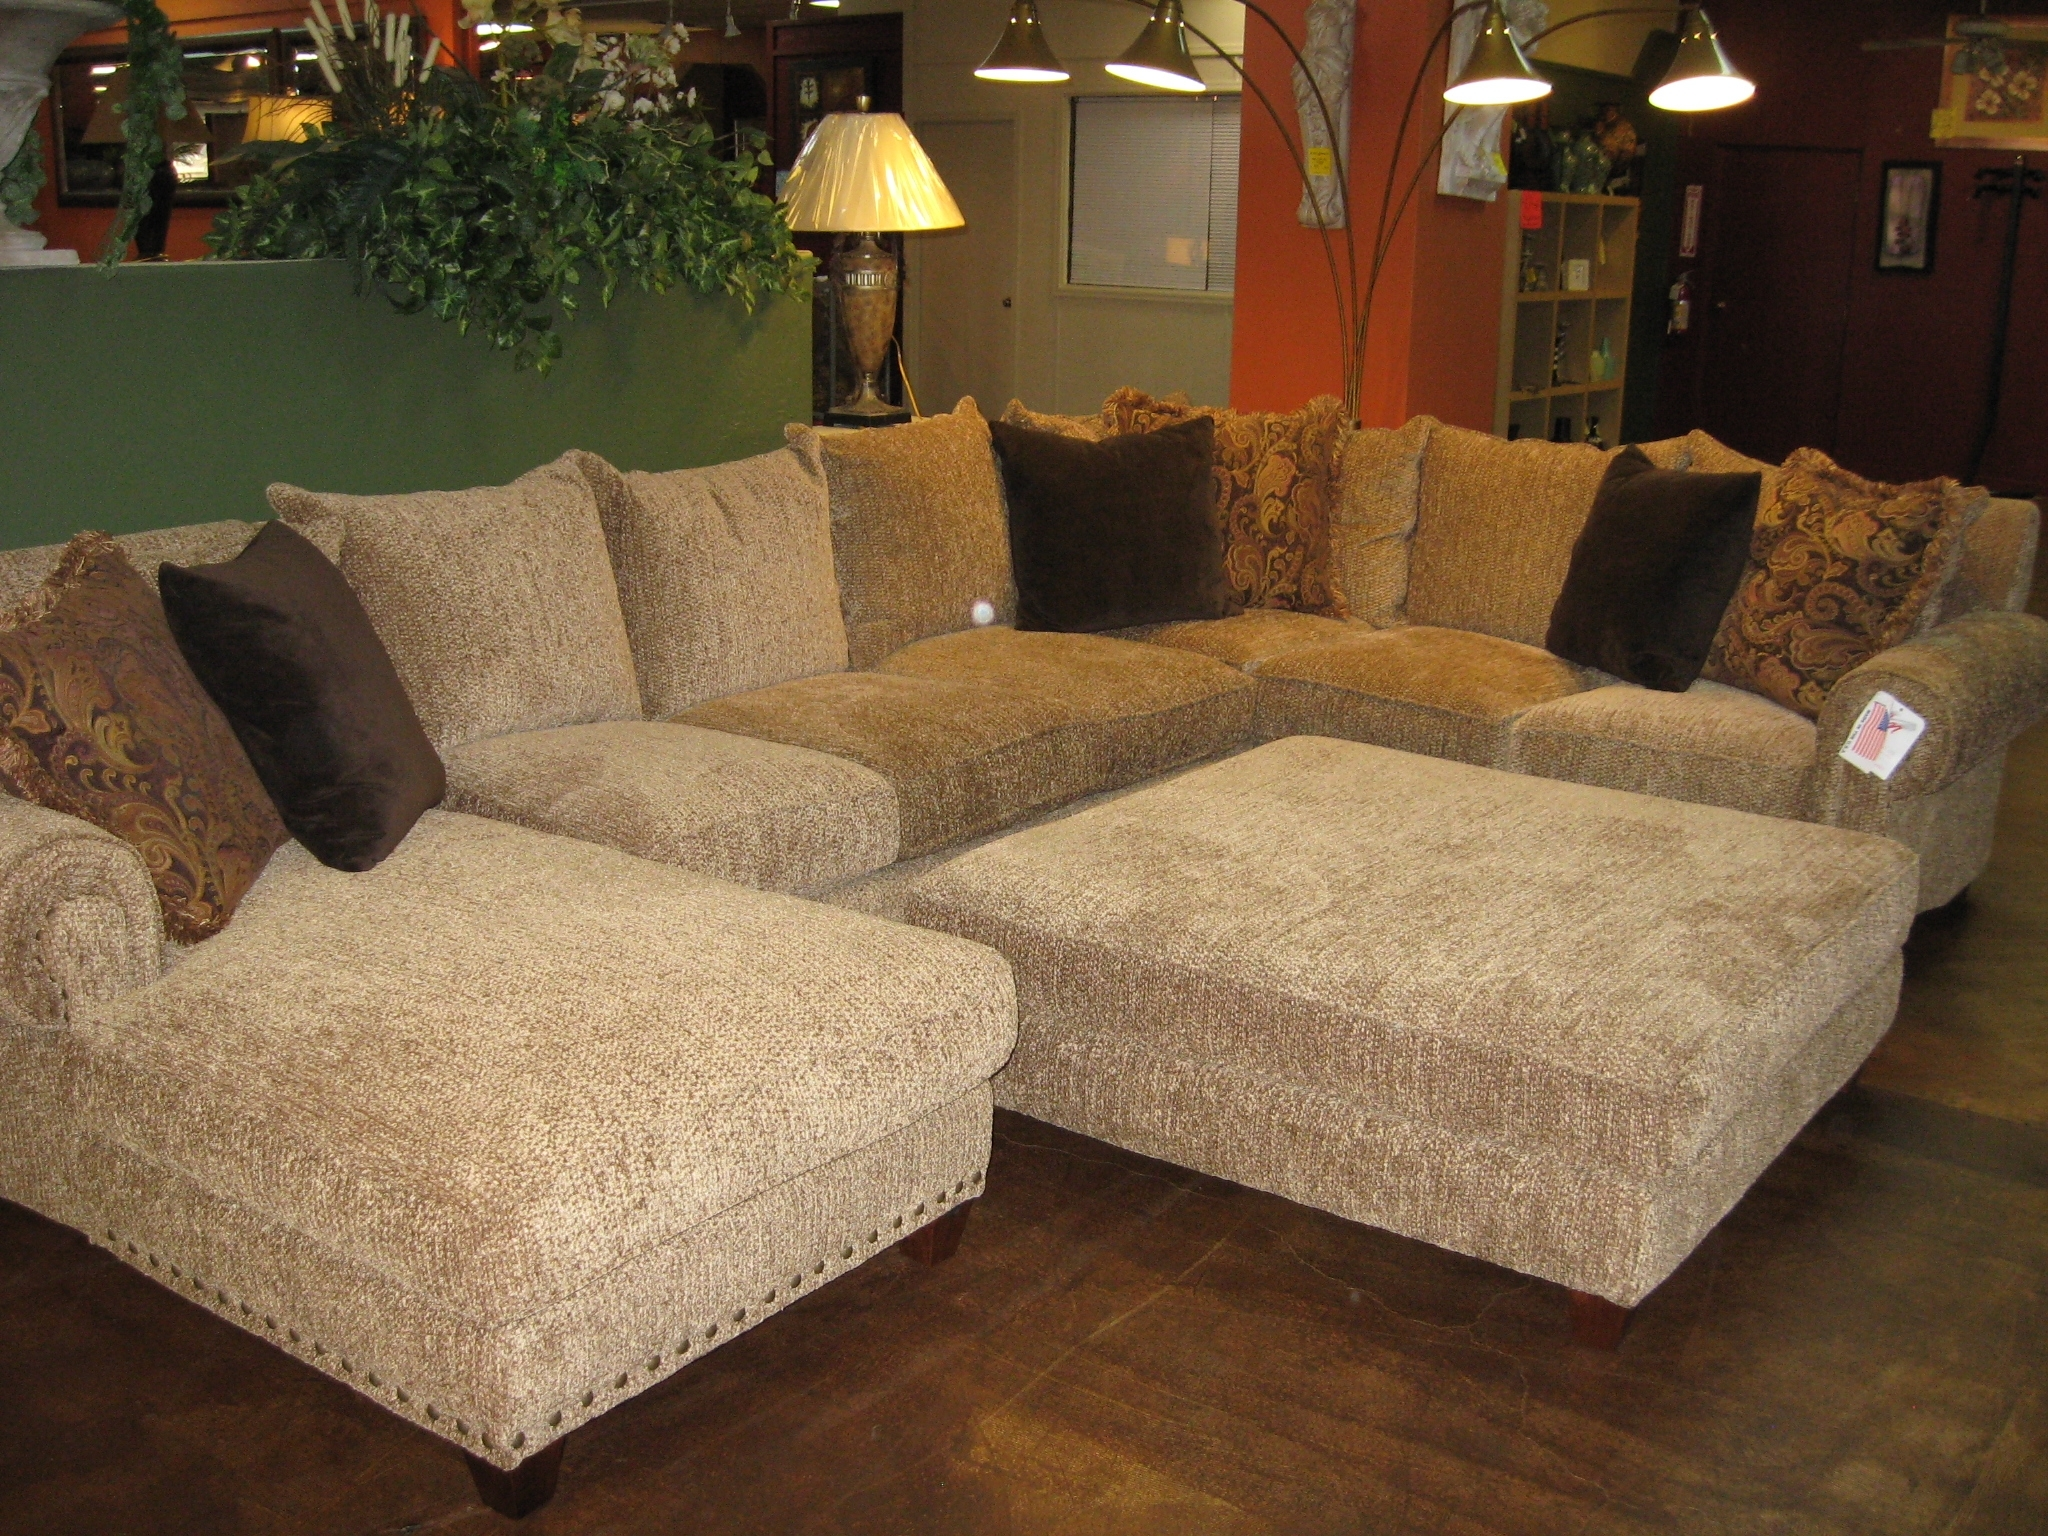 Epic Large Sectional Sofa With Ottoman About Elegant Large Sectional With Regard To Sectional Couches With Large Ottoman (View 5 of 10)